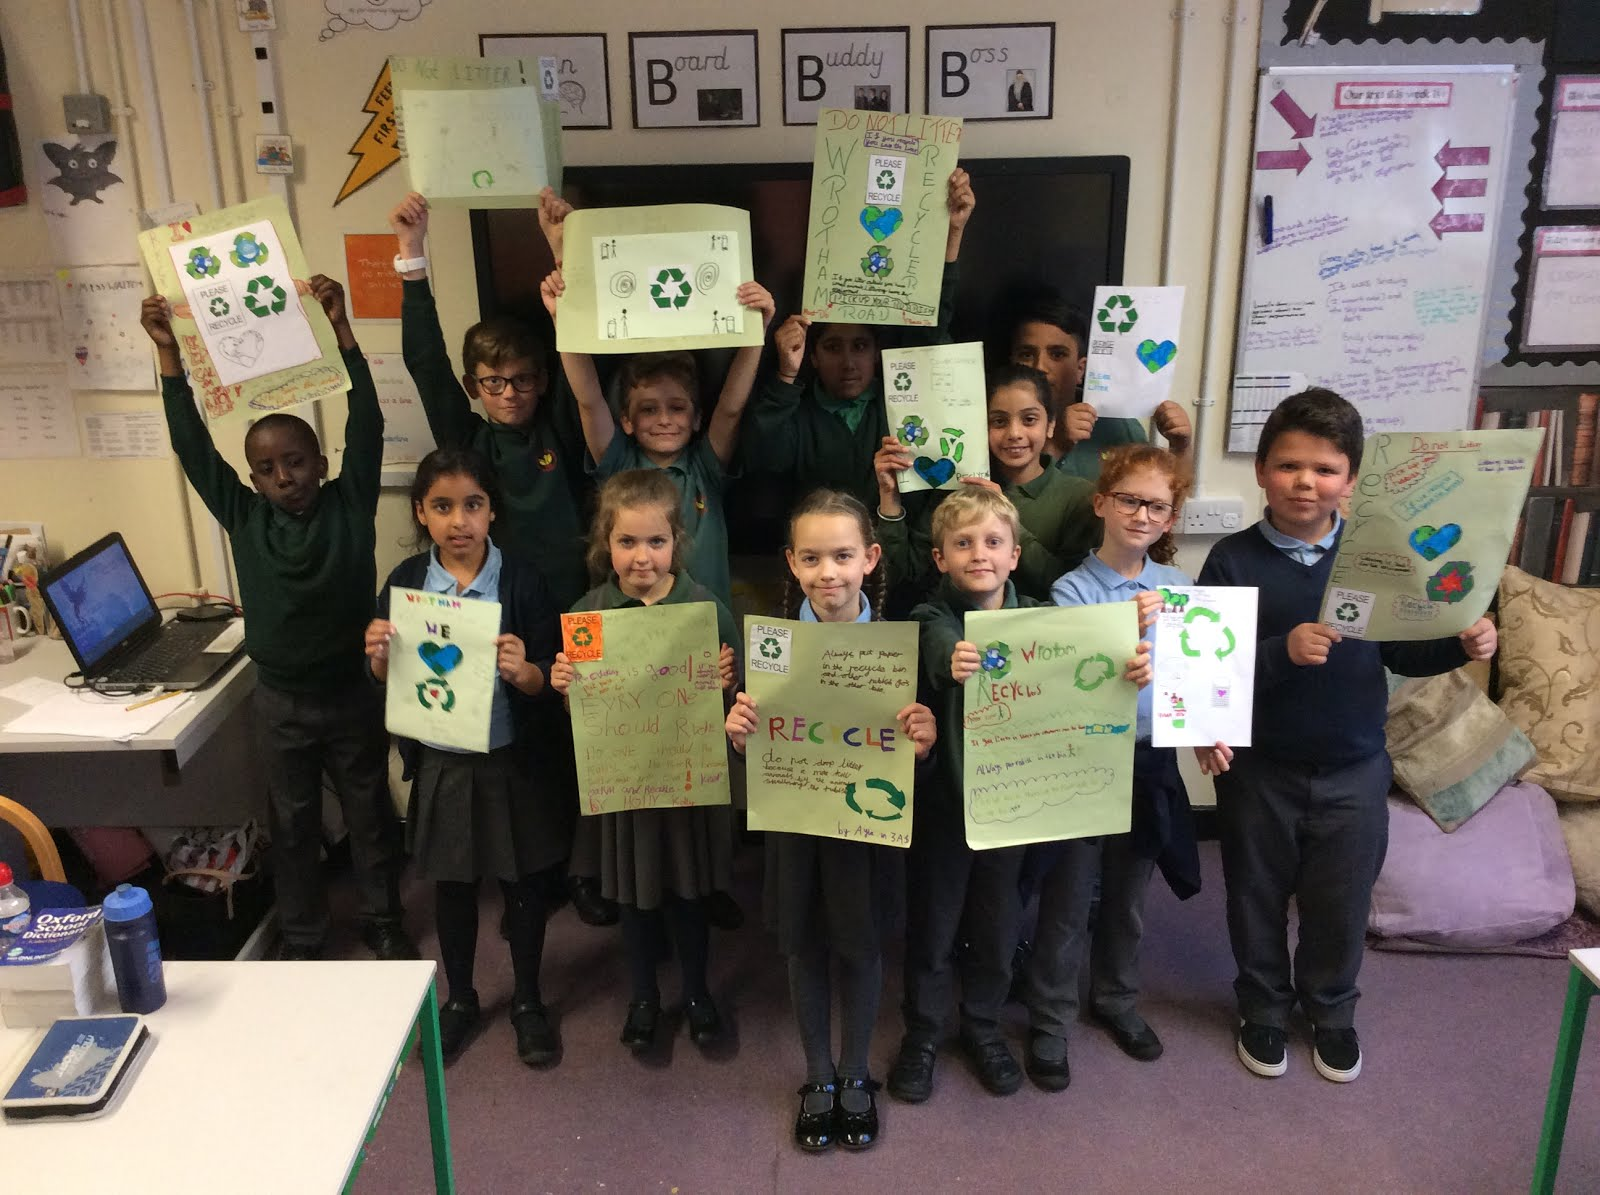 Eco counsellors with their recycling posters